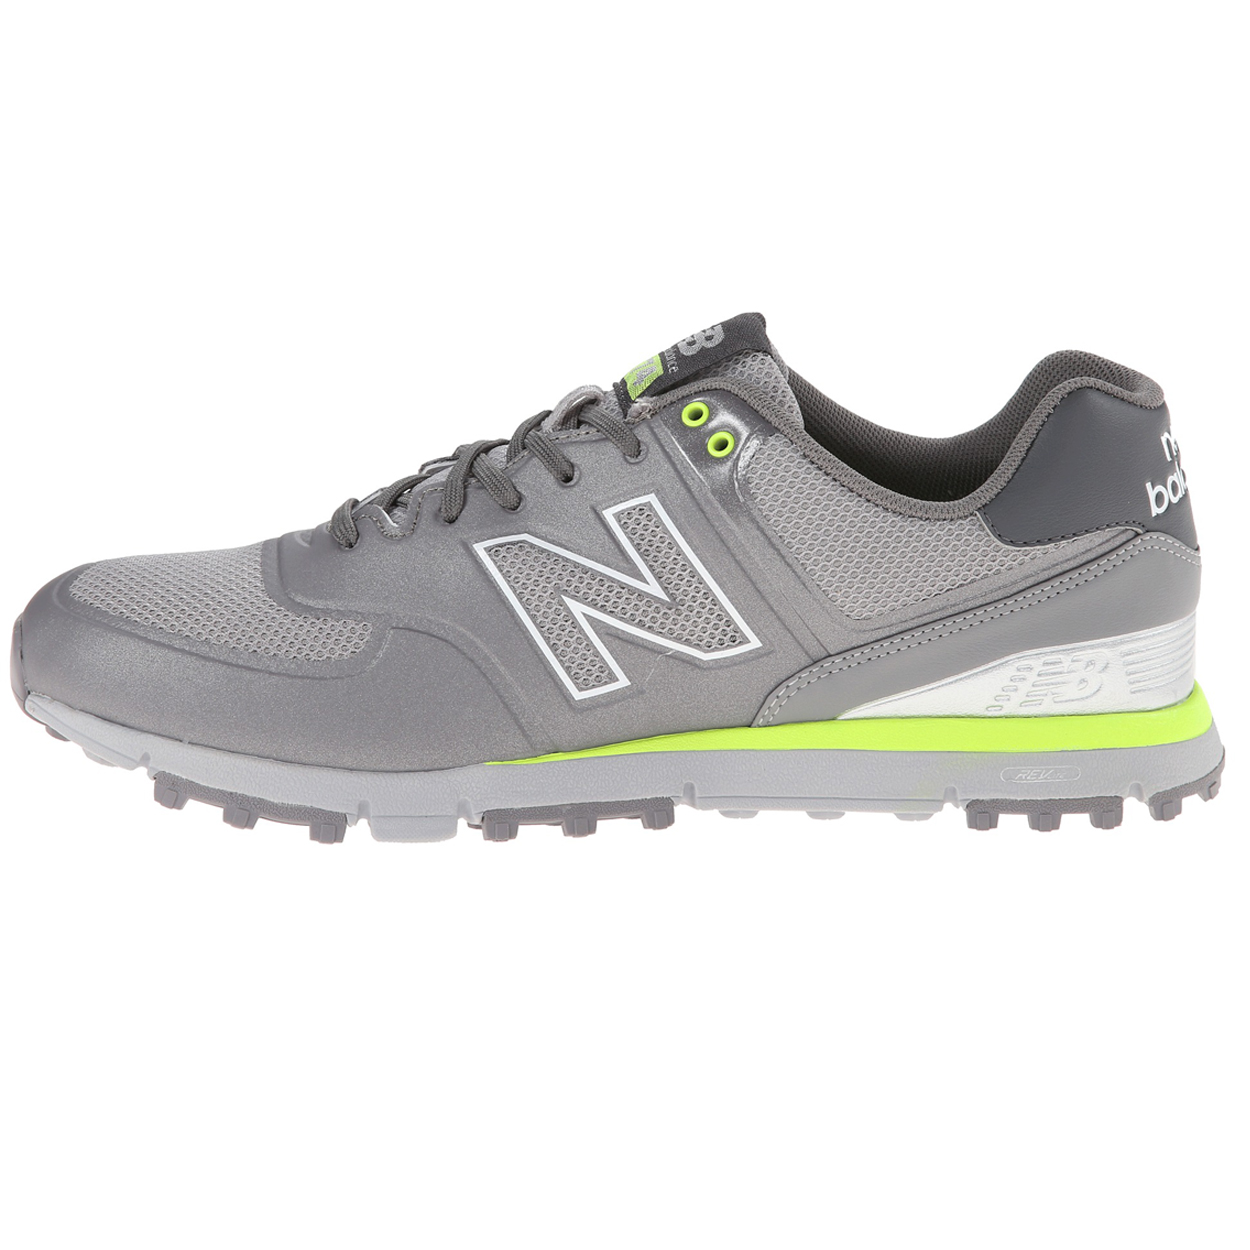 sports shoes a7874 932c3 Visit our store for more golf clubs, apparel,   accessories.